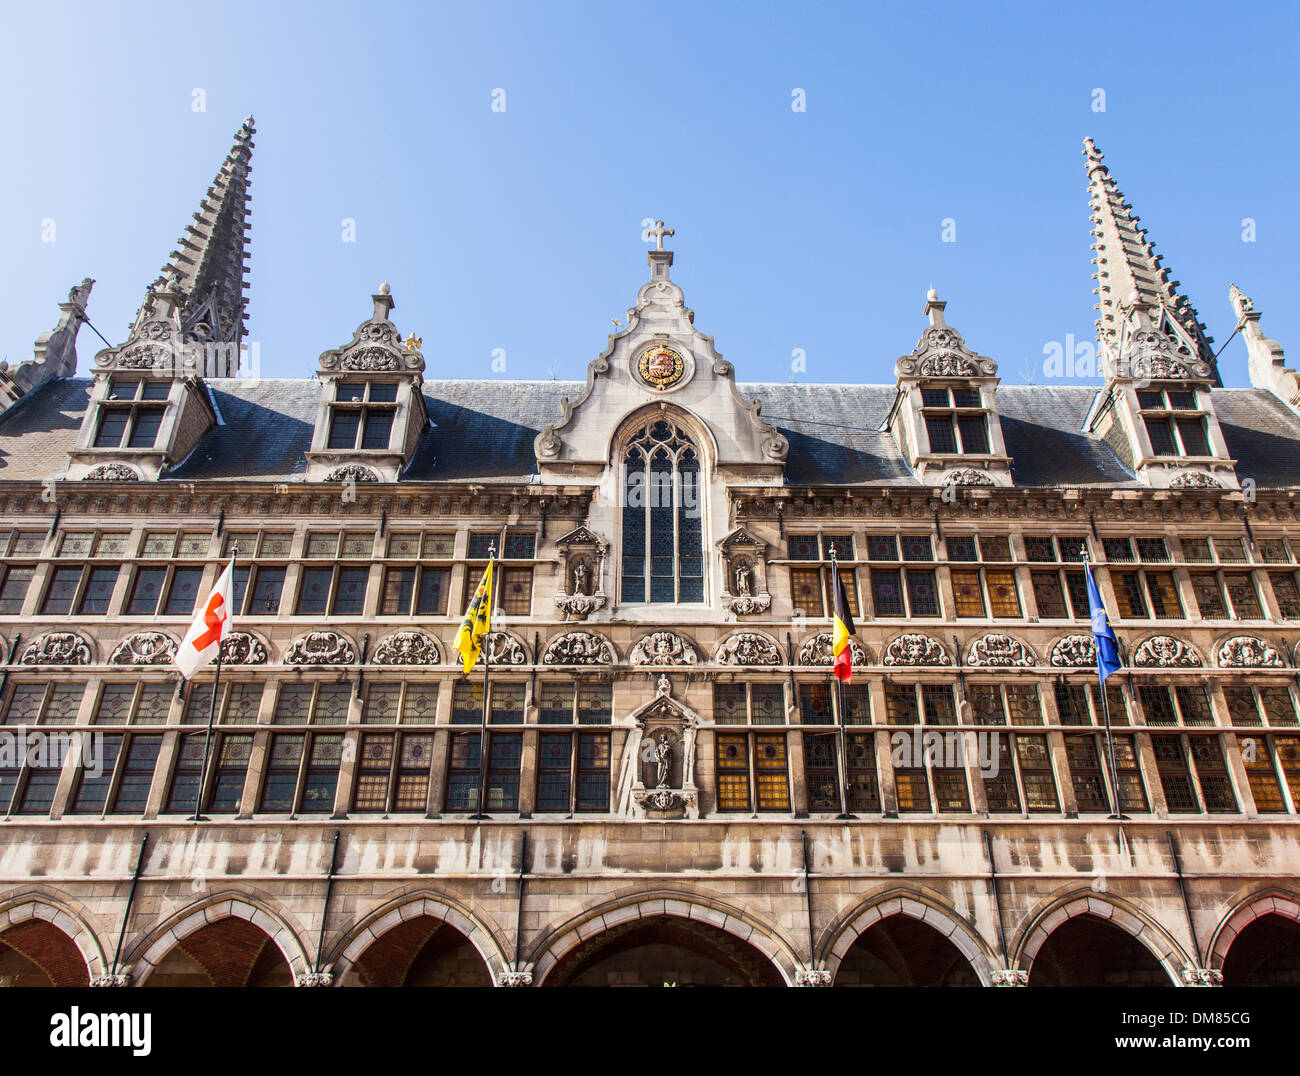 Buildings and architecture of the old town of Ypres in Grote Markt, Ypres, Belgium Stock Photo